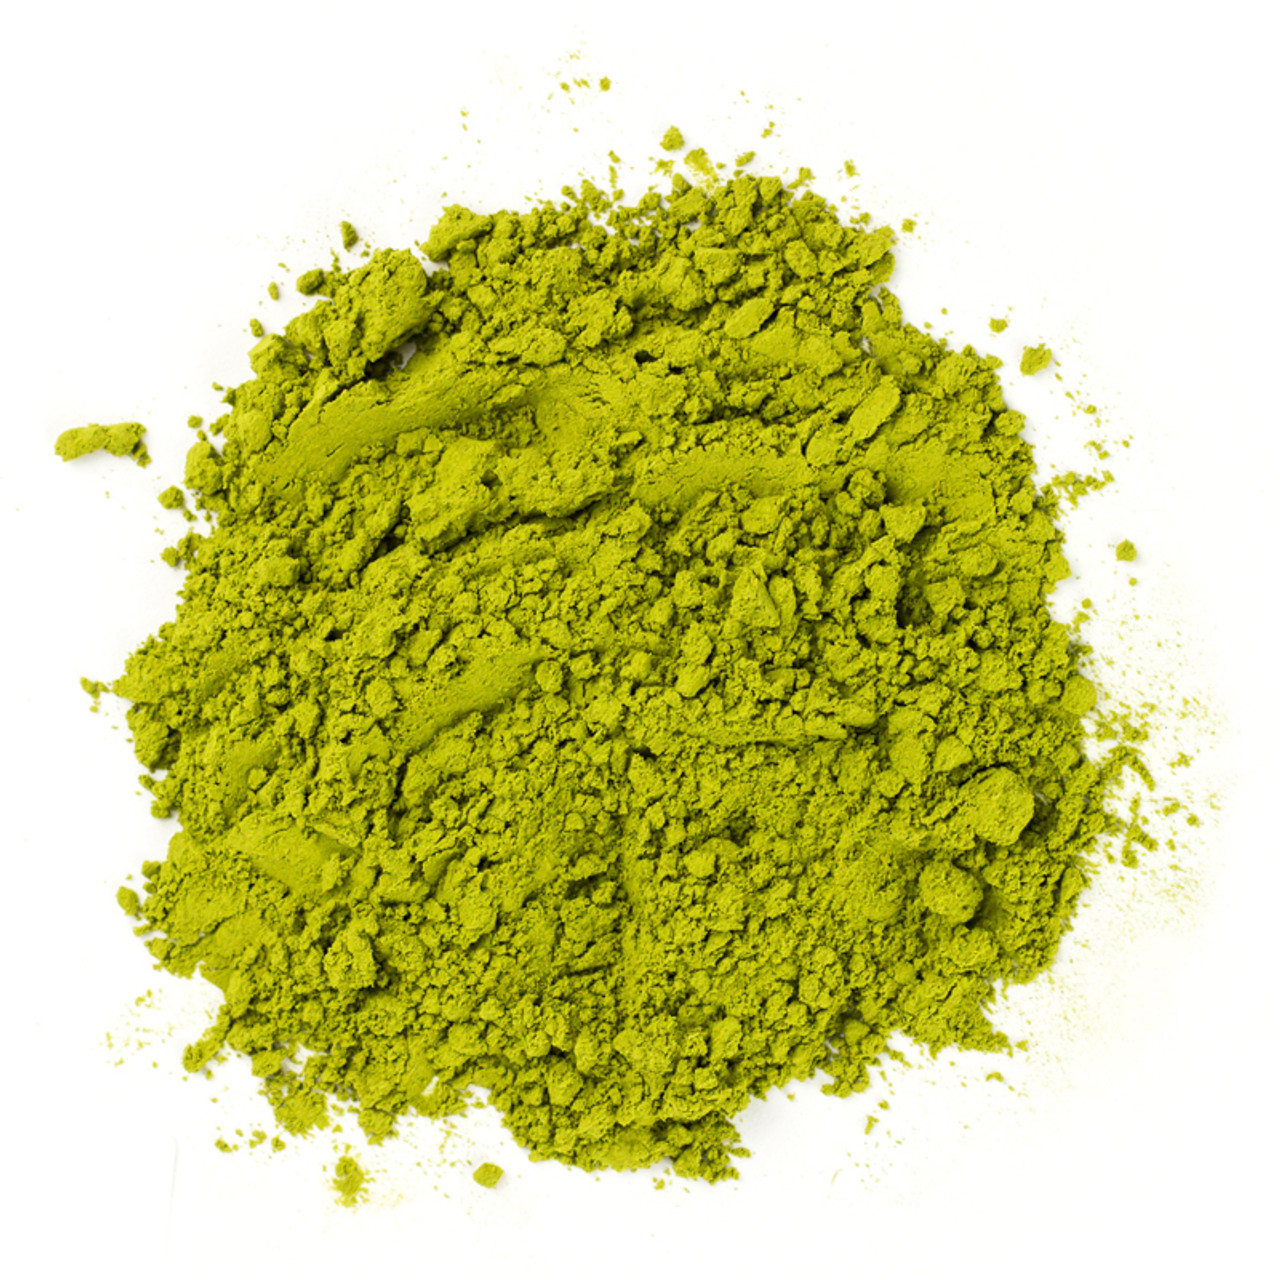 Matcha-Powdered Green Tea